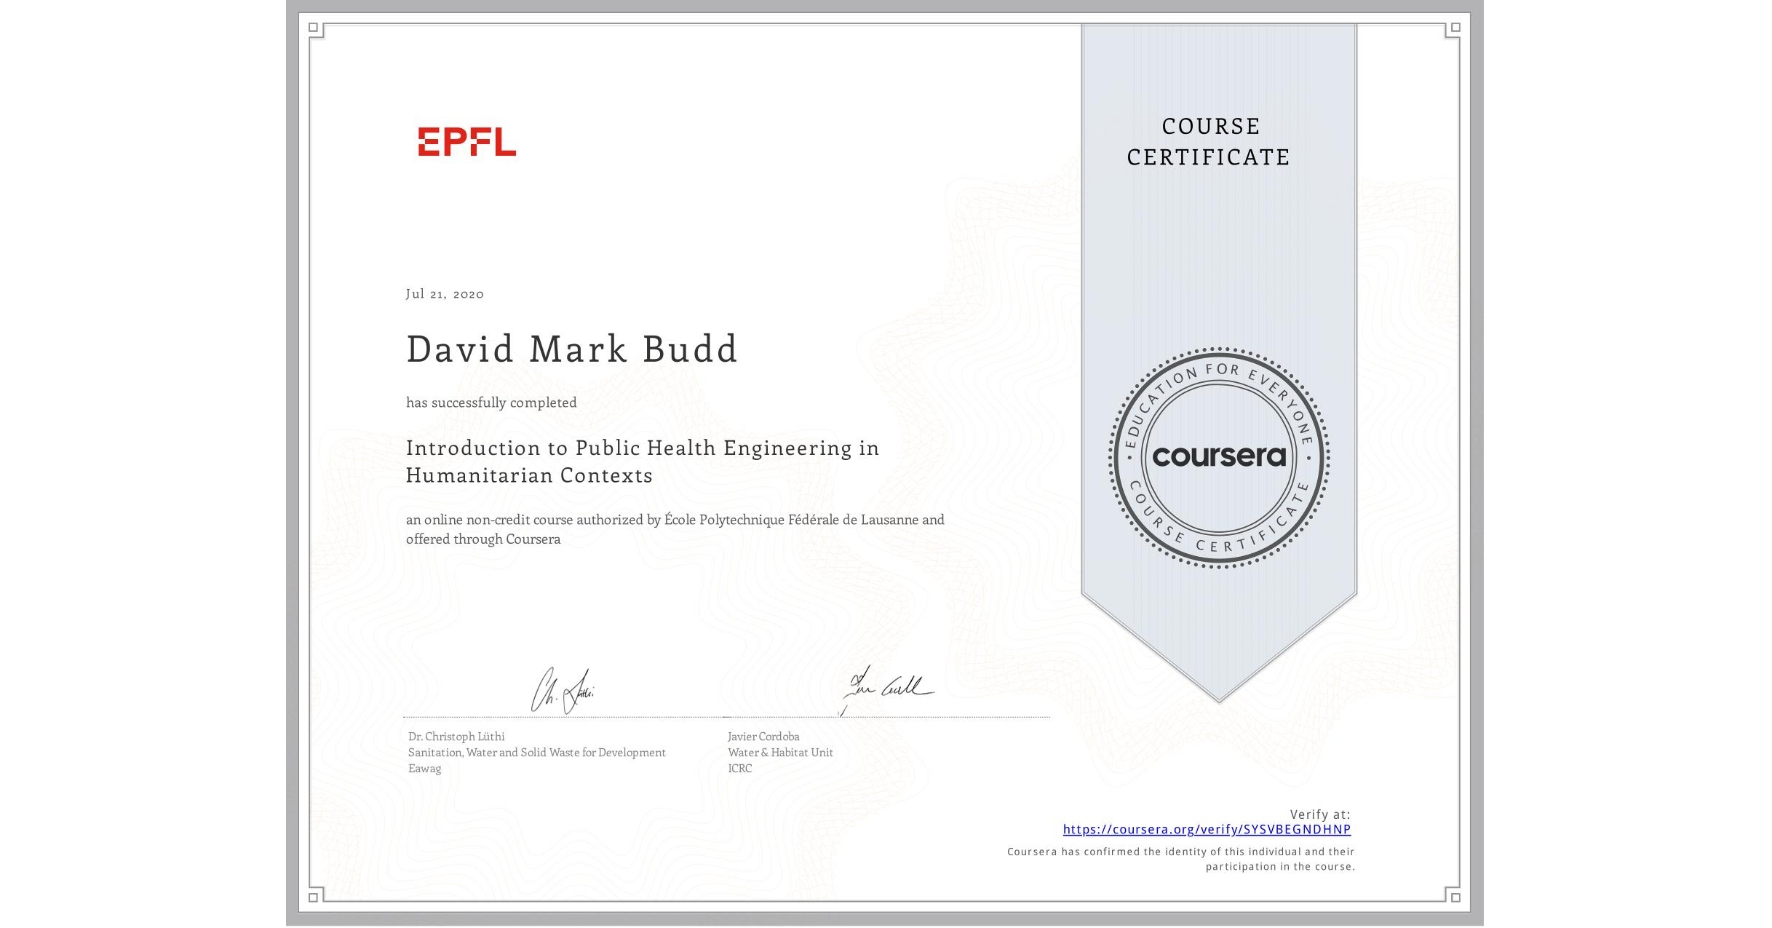 View certificate for David Mark Budd, Introduction to Public Health Engineering in Humanitarian Contexts, an online non-credit course authorized by École Polytechnique Fédérale de Lausanne and offered through Coursera